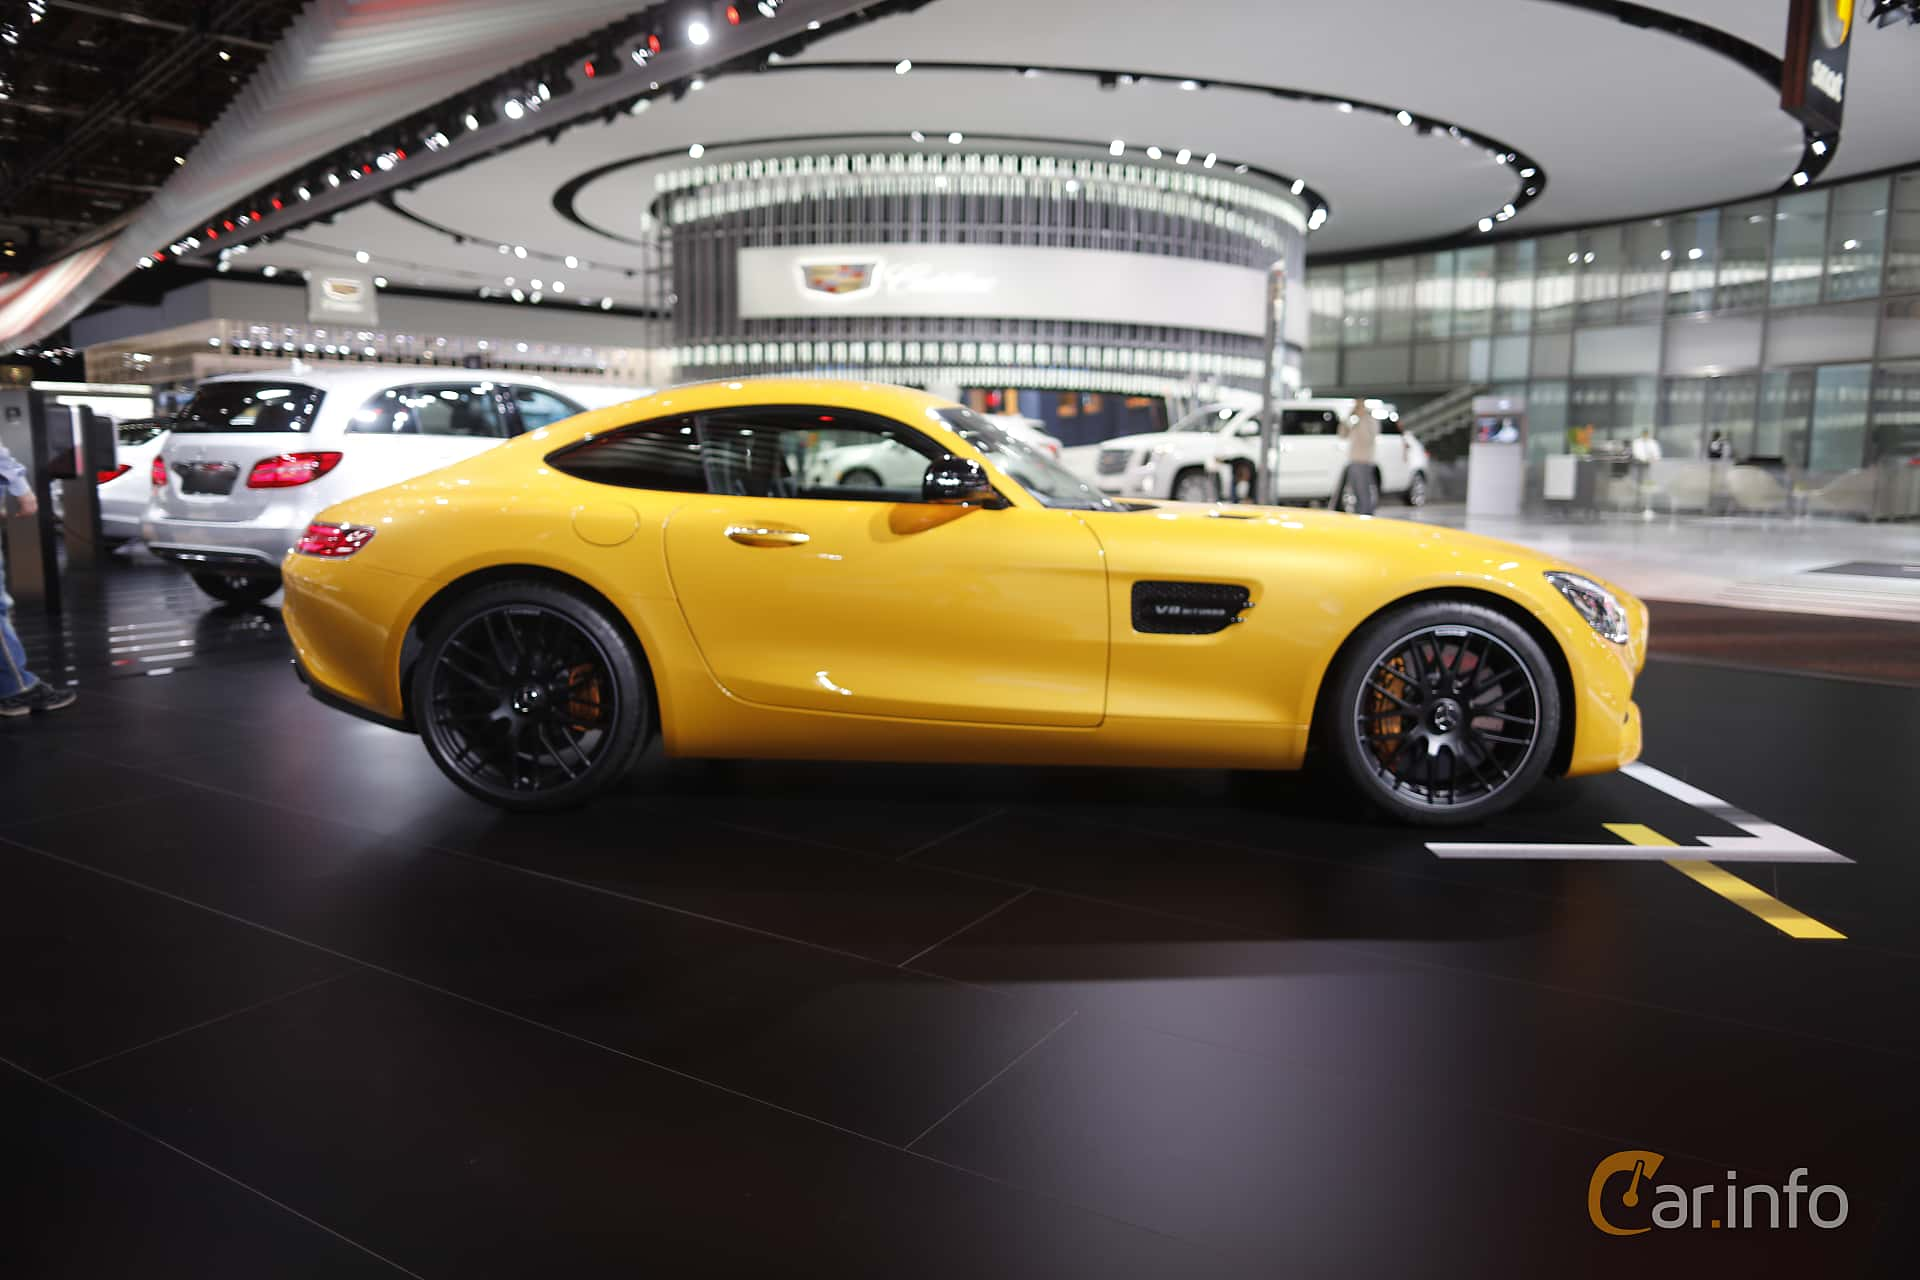 Sida av Mercedes-Benz AMG GT S 4.0 V8 AMG Speedshift DCT, 510ps, 375kW, 2017 på North American International Auto Show 2017